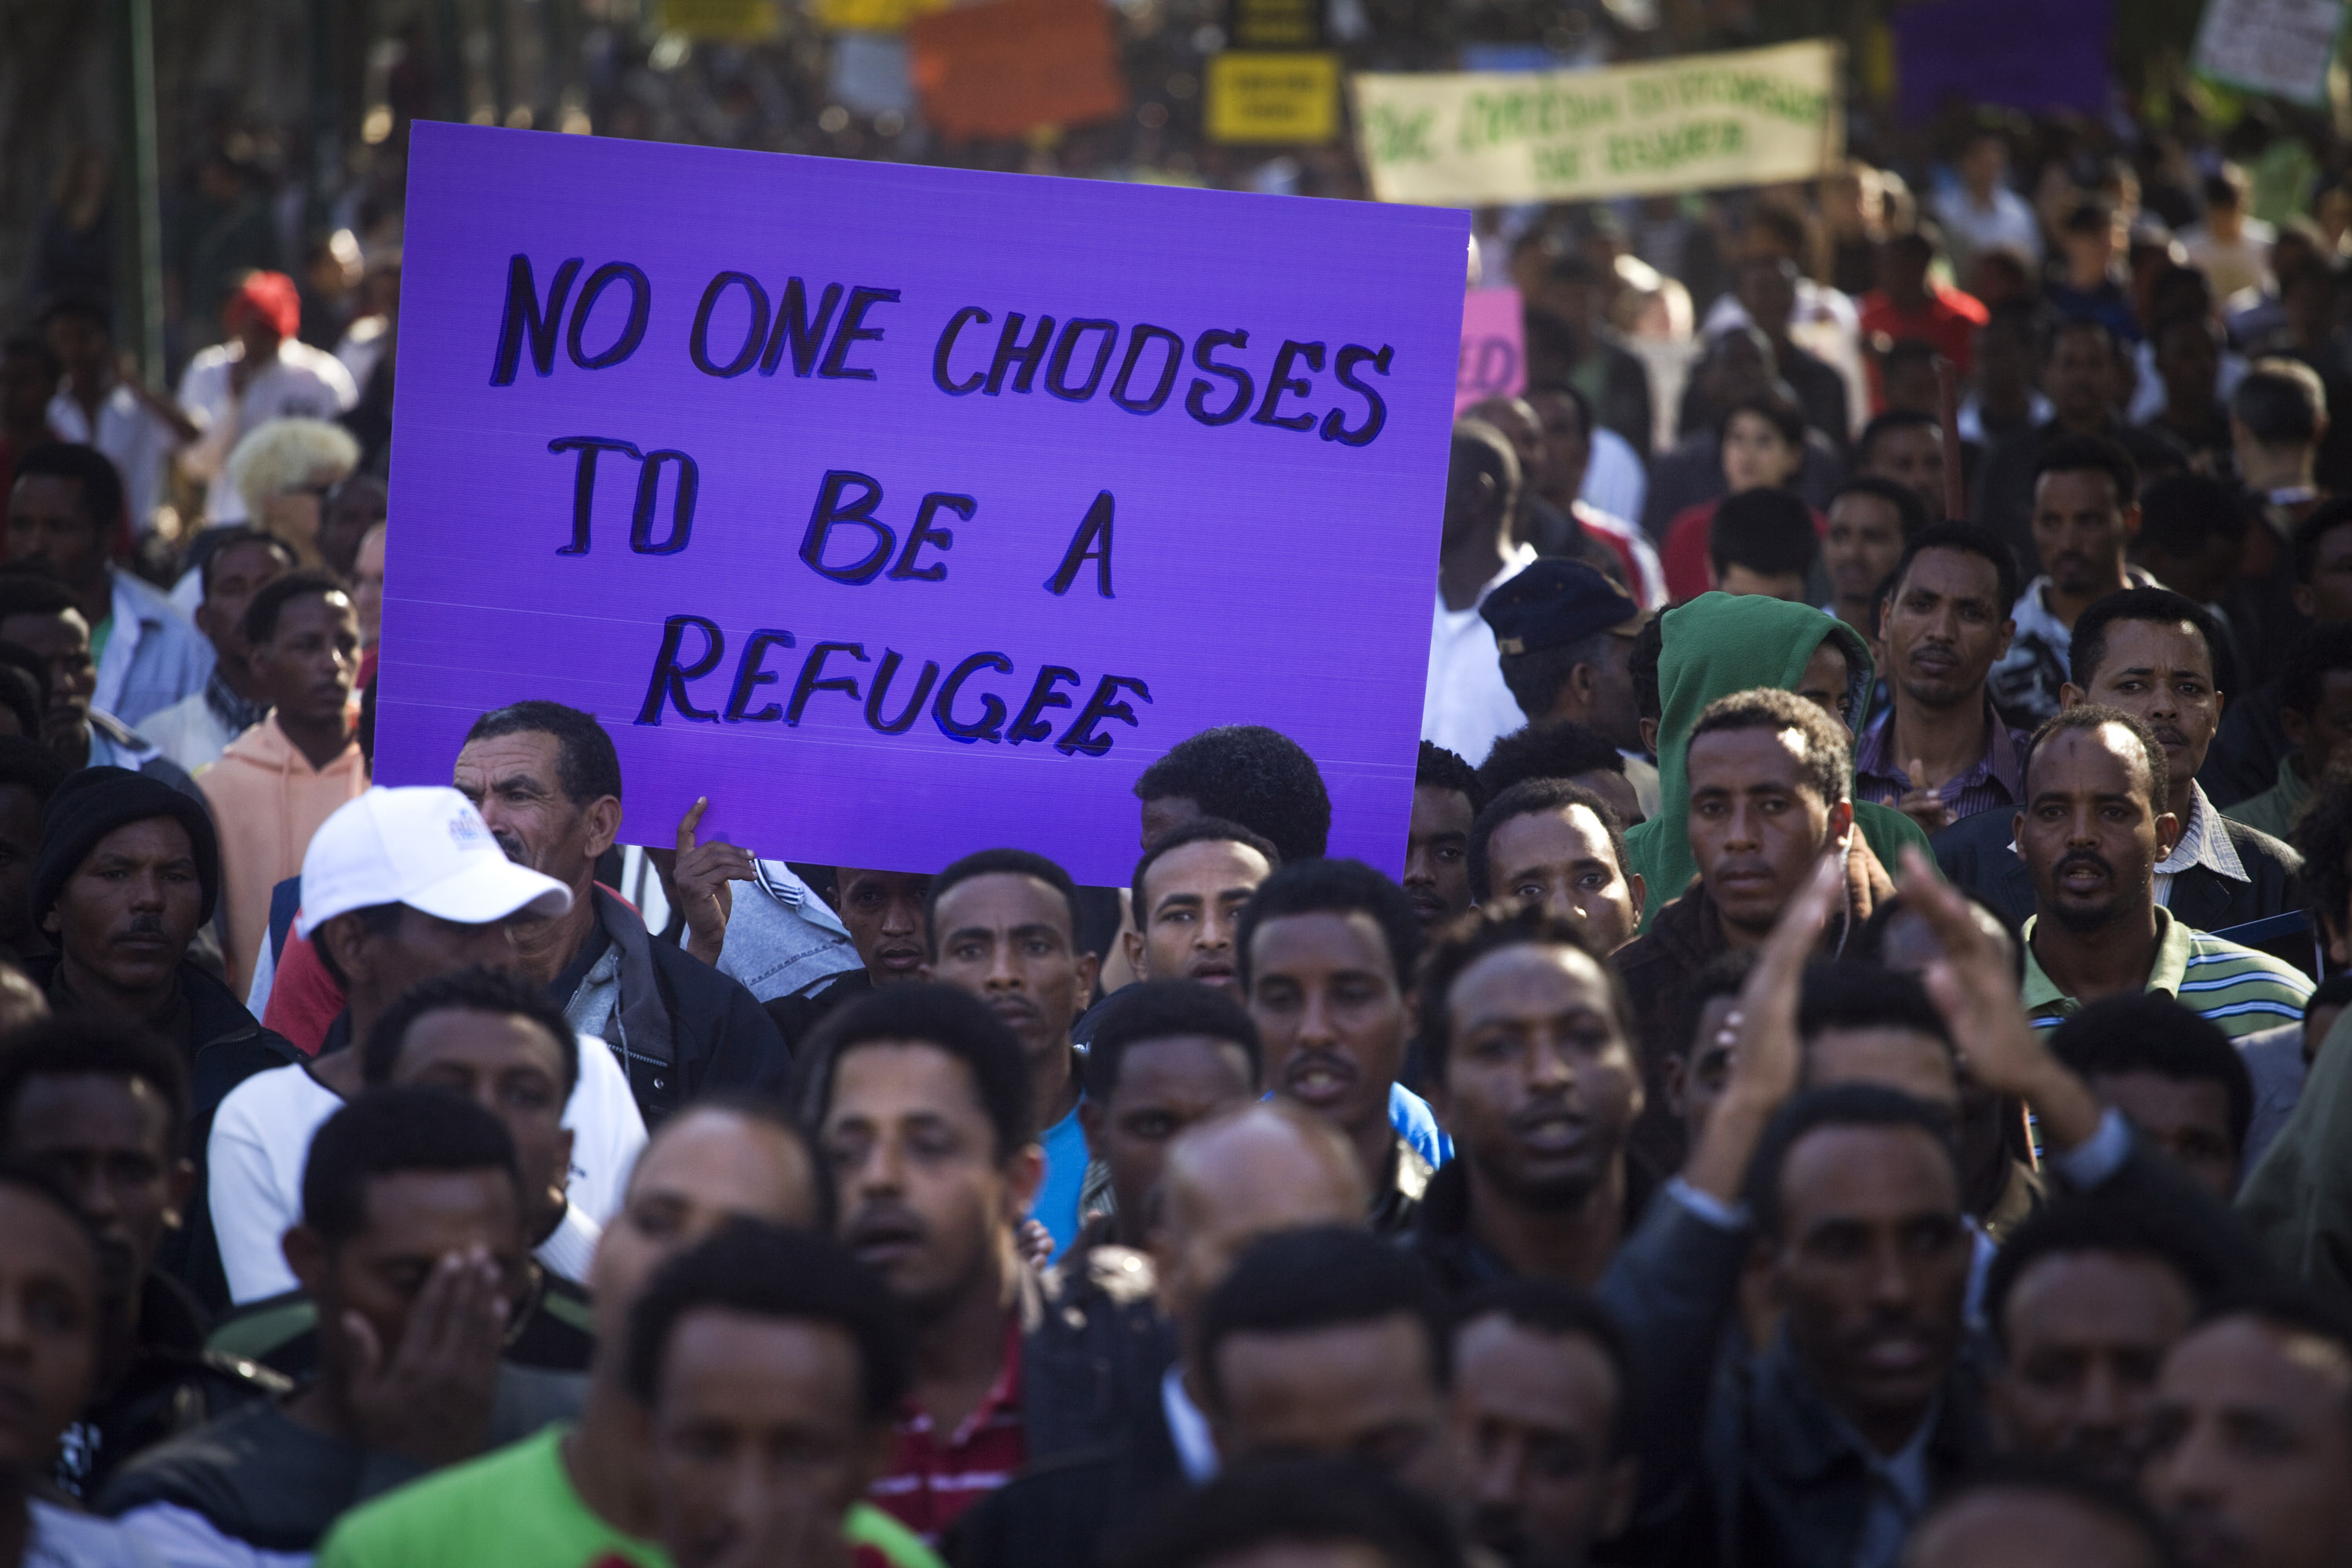 Bishop for Migration and Asylum has spoken out against the recent dehumanising rhetoric used about asylum seekers